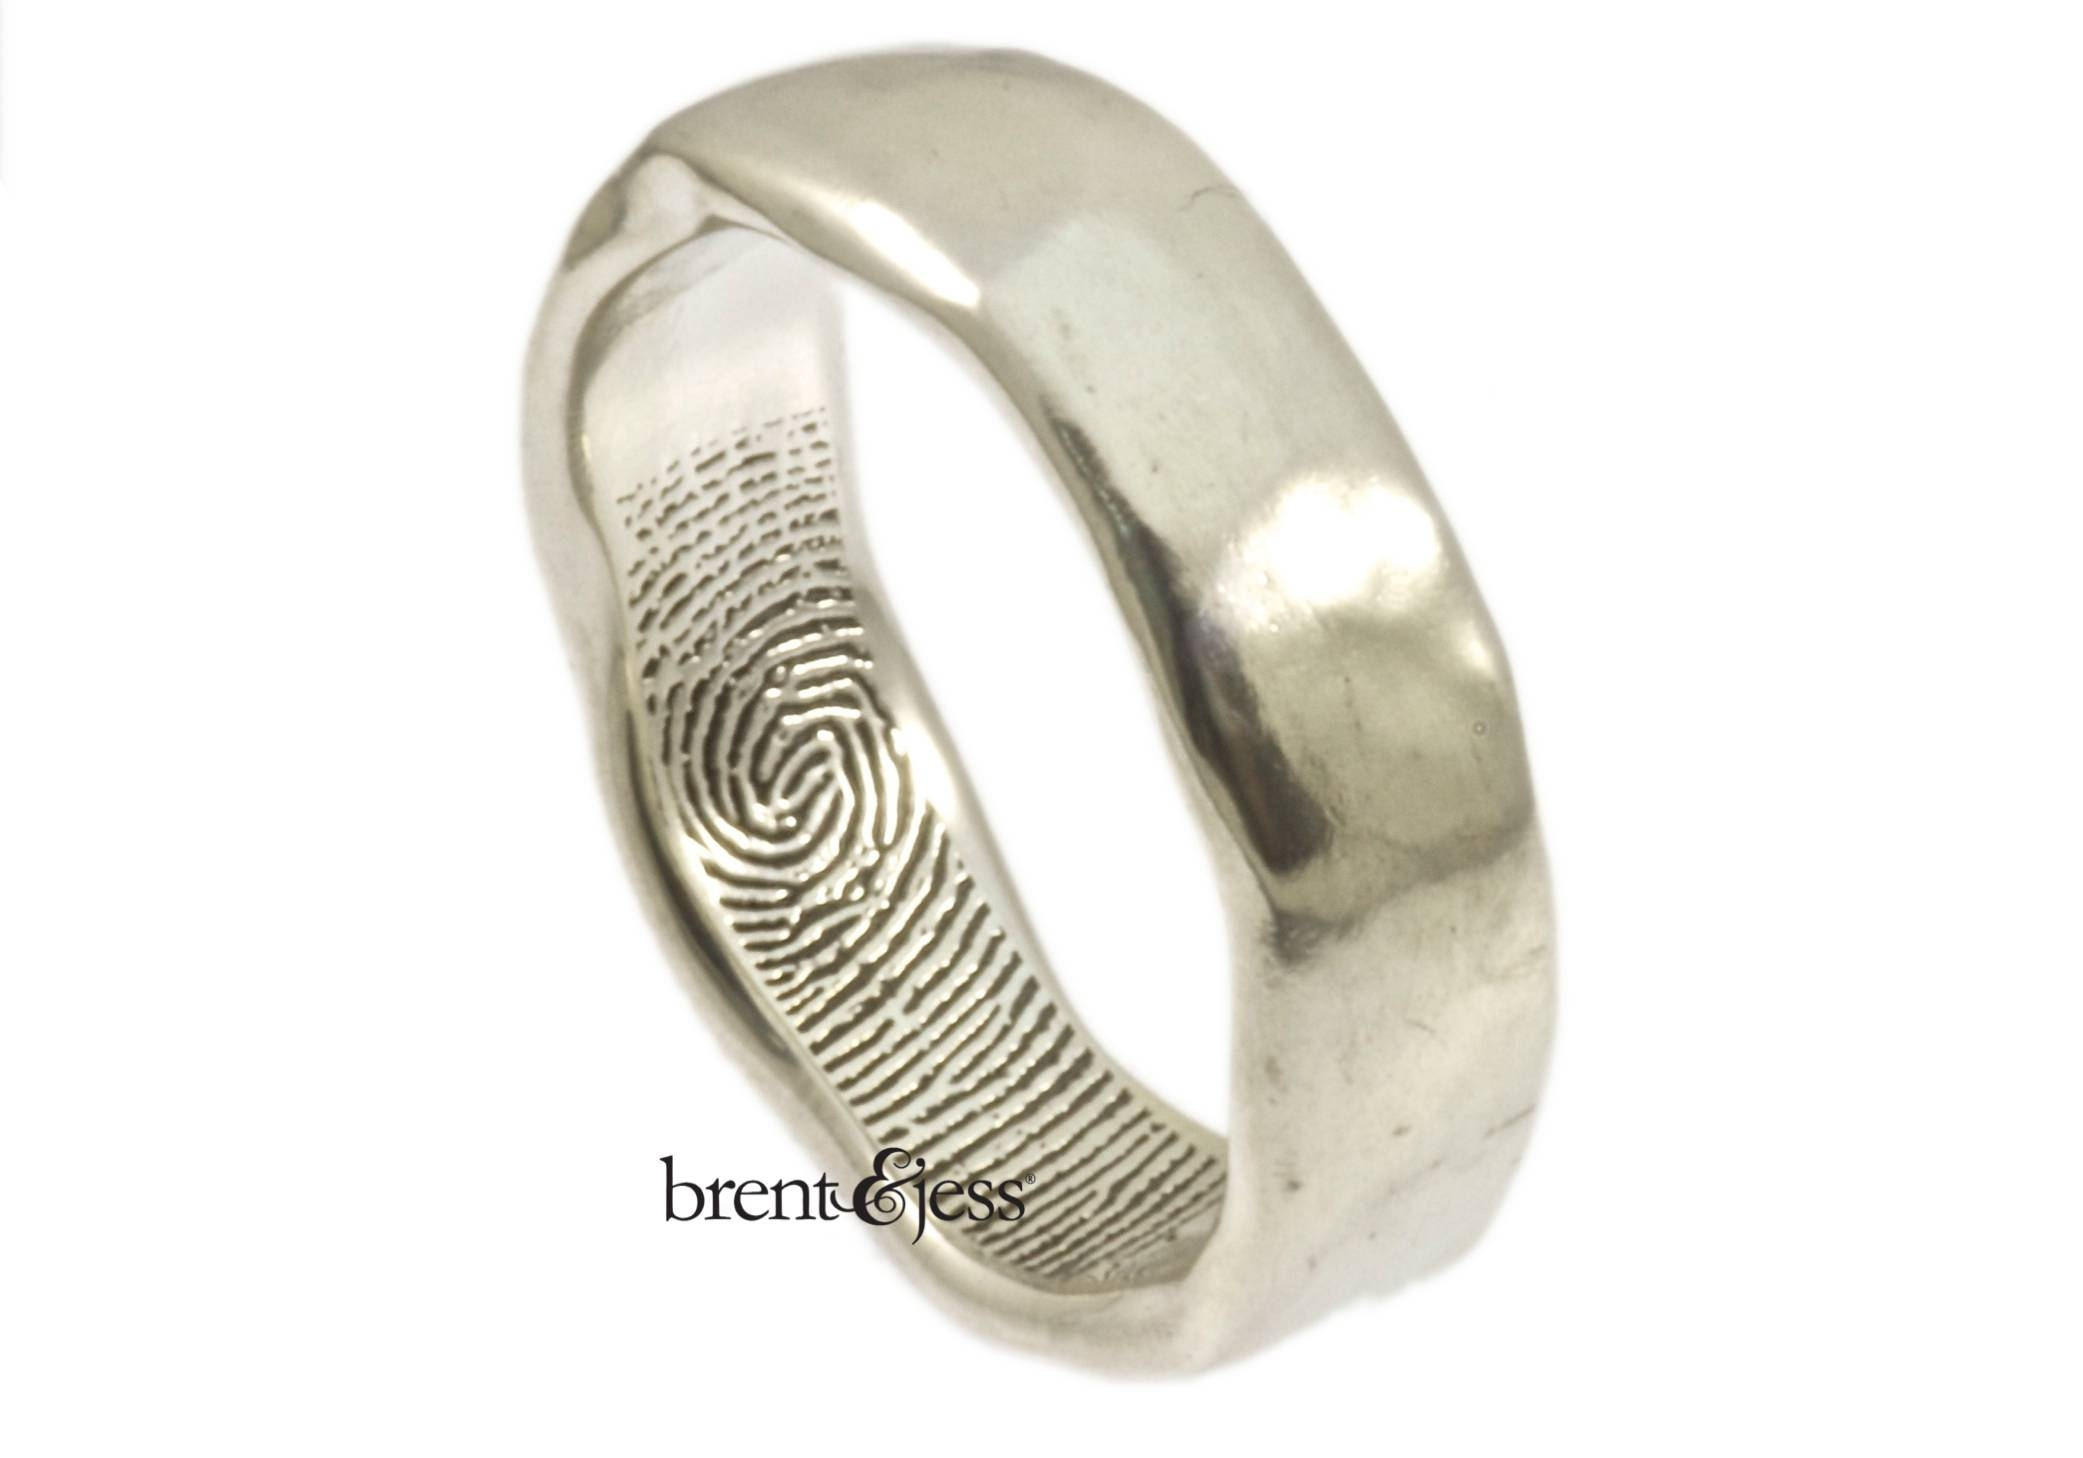 Brent&jess Fingerprint Wedding Rings · Ruffled Within Fingerprint Wedding Rings (View 3 of 15)